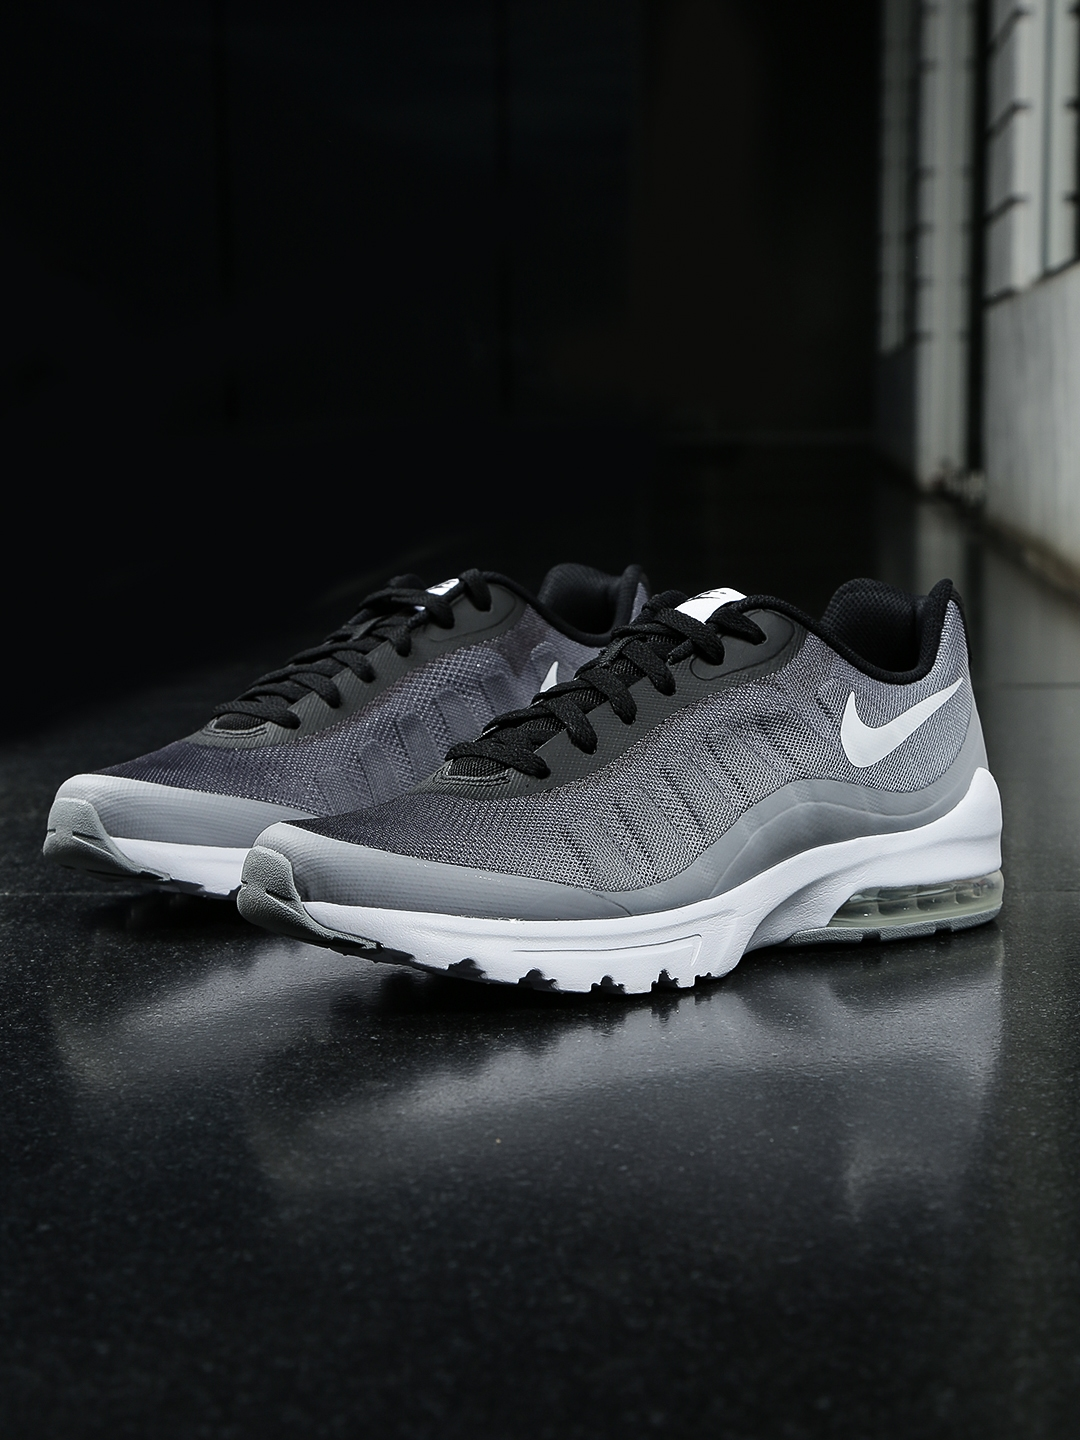 online store 9c855 bb889 11508330679276-Nike -Men-Grey-AIR-MAX-INVIGOR-PRINT-Sneakers-7211508330679070-1.jpg